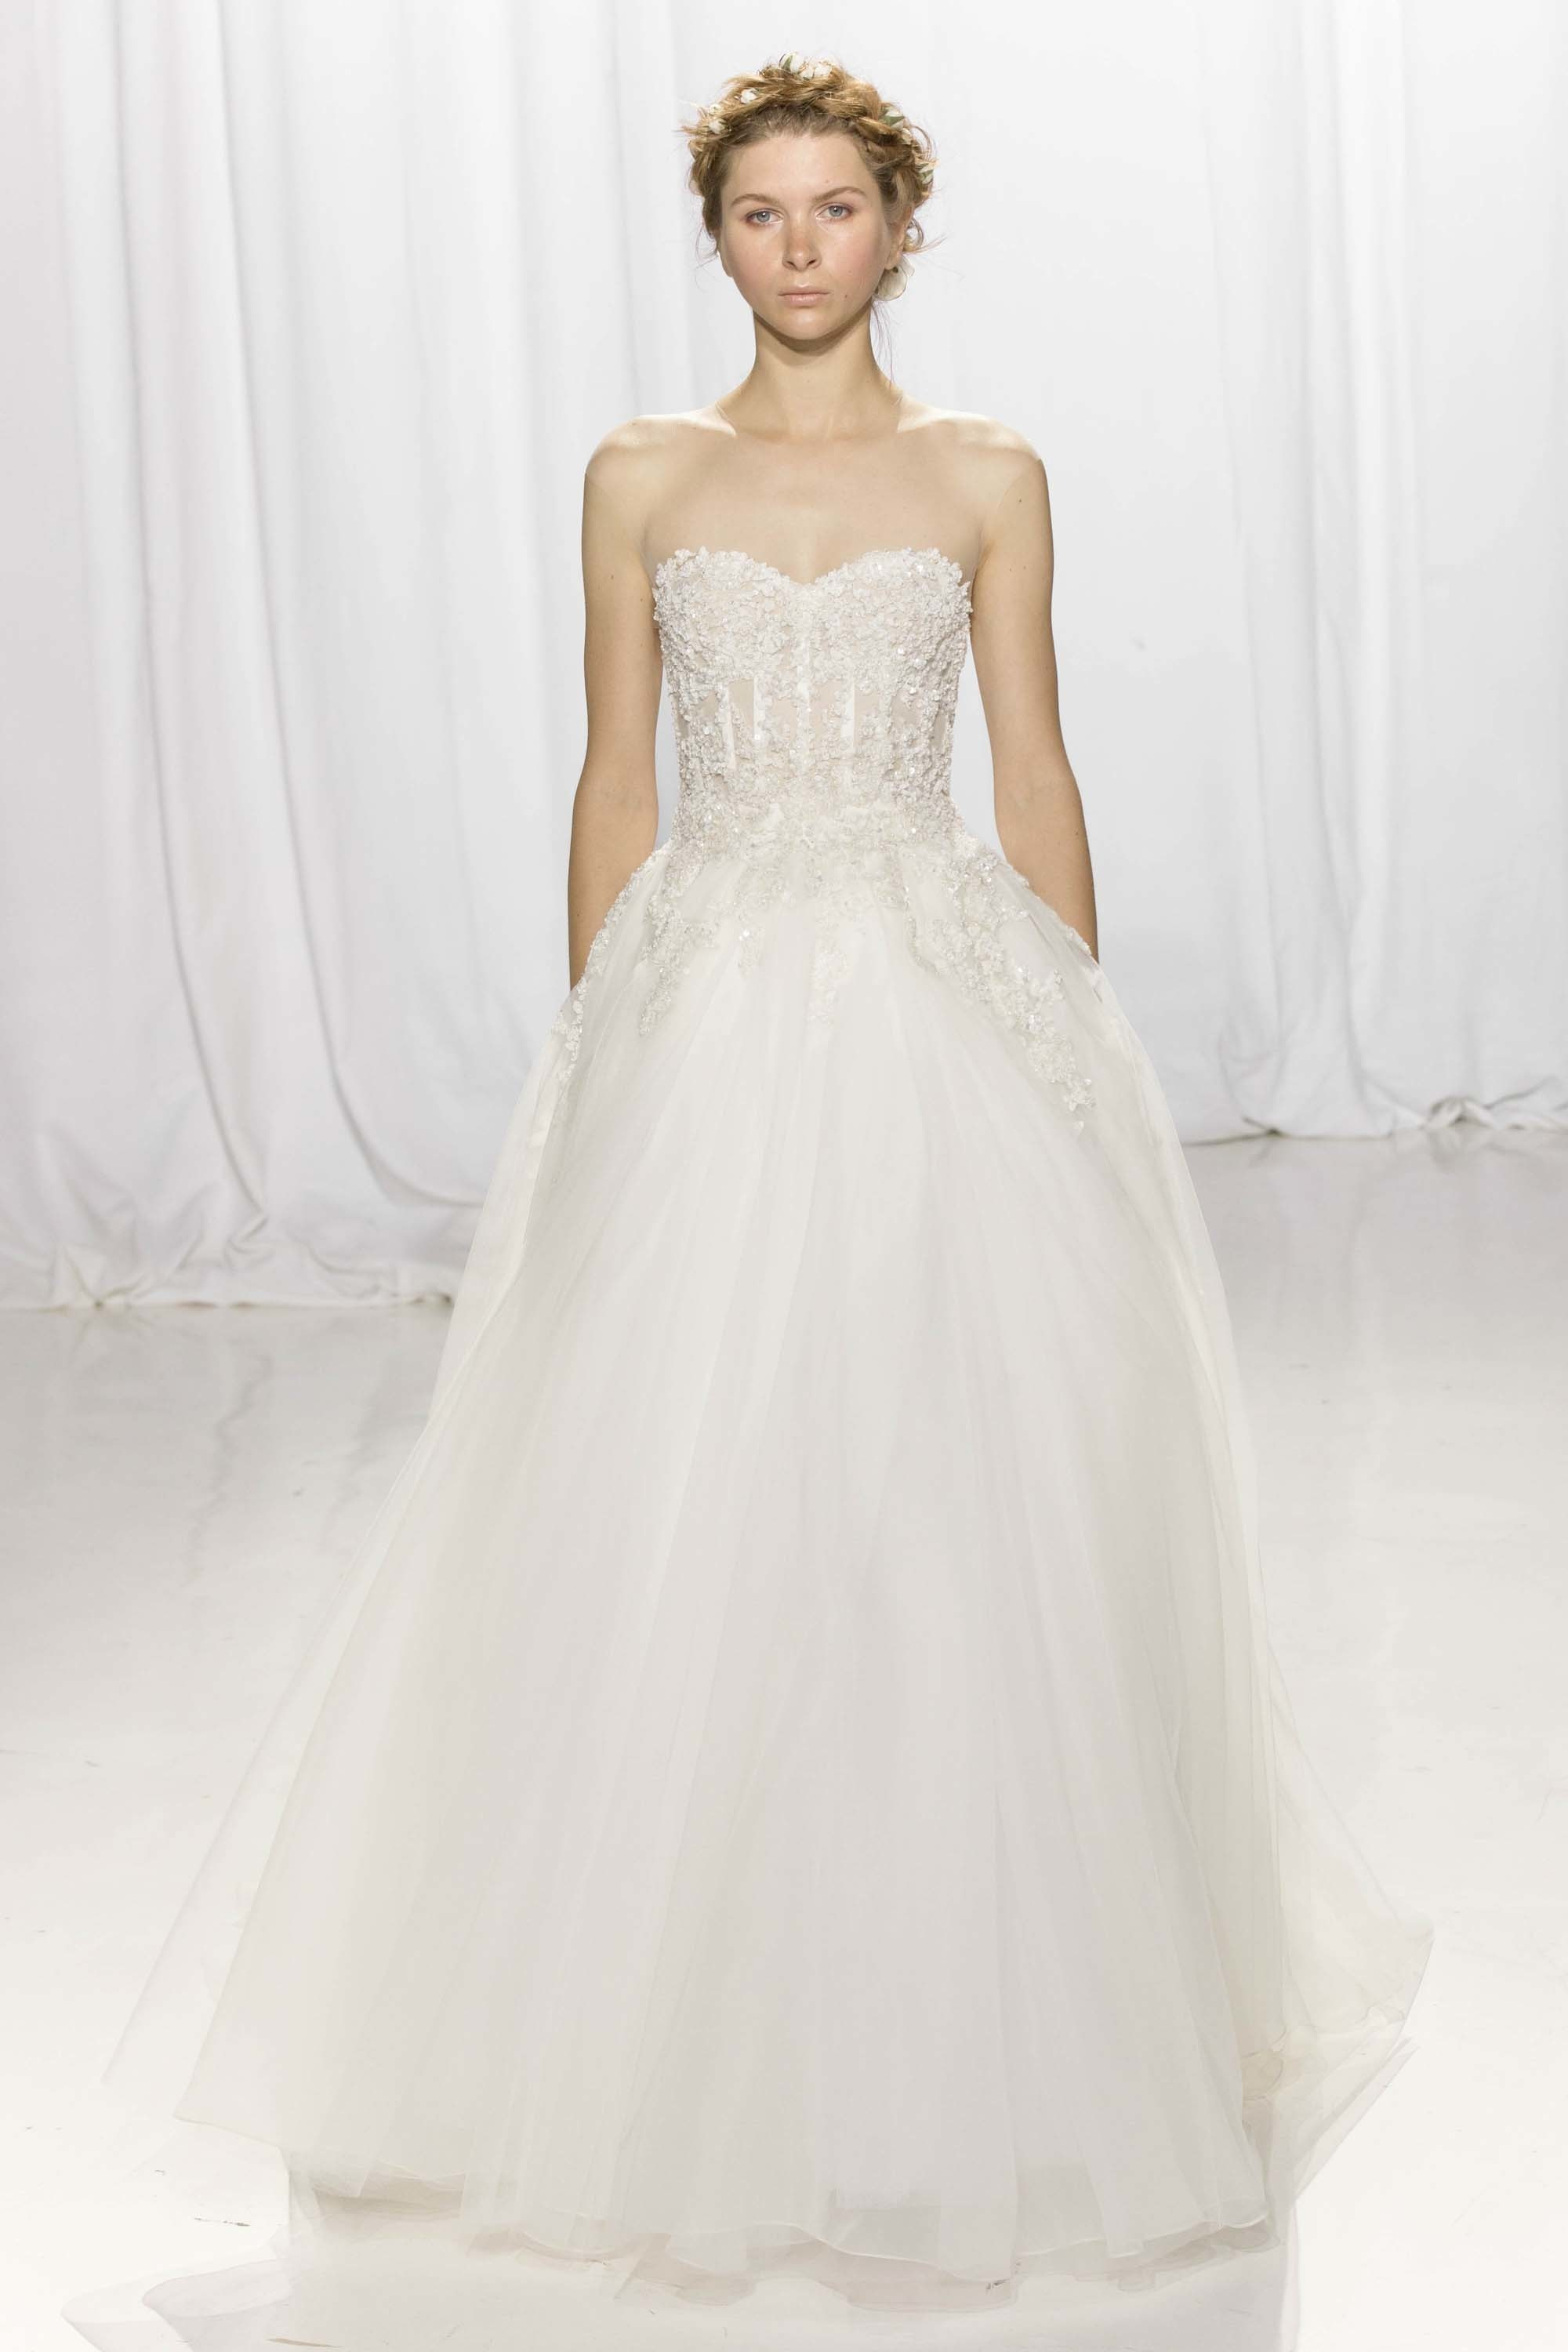 Tiffany Blue Dresses For Wedding 50 Trend From Reem Acra us